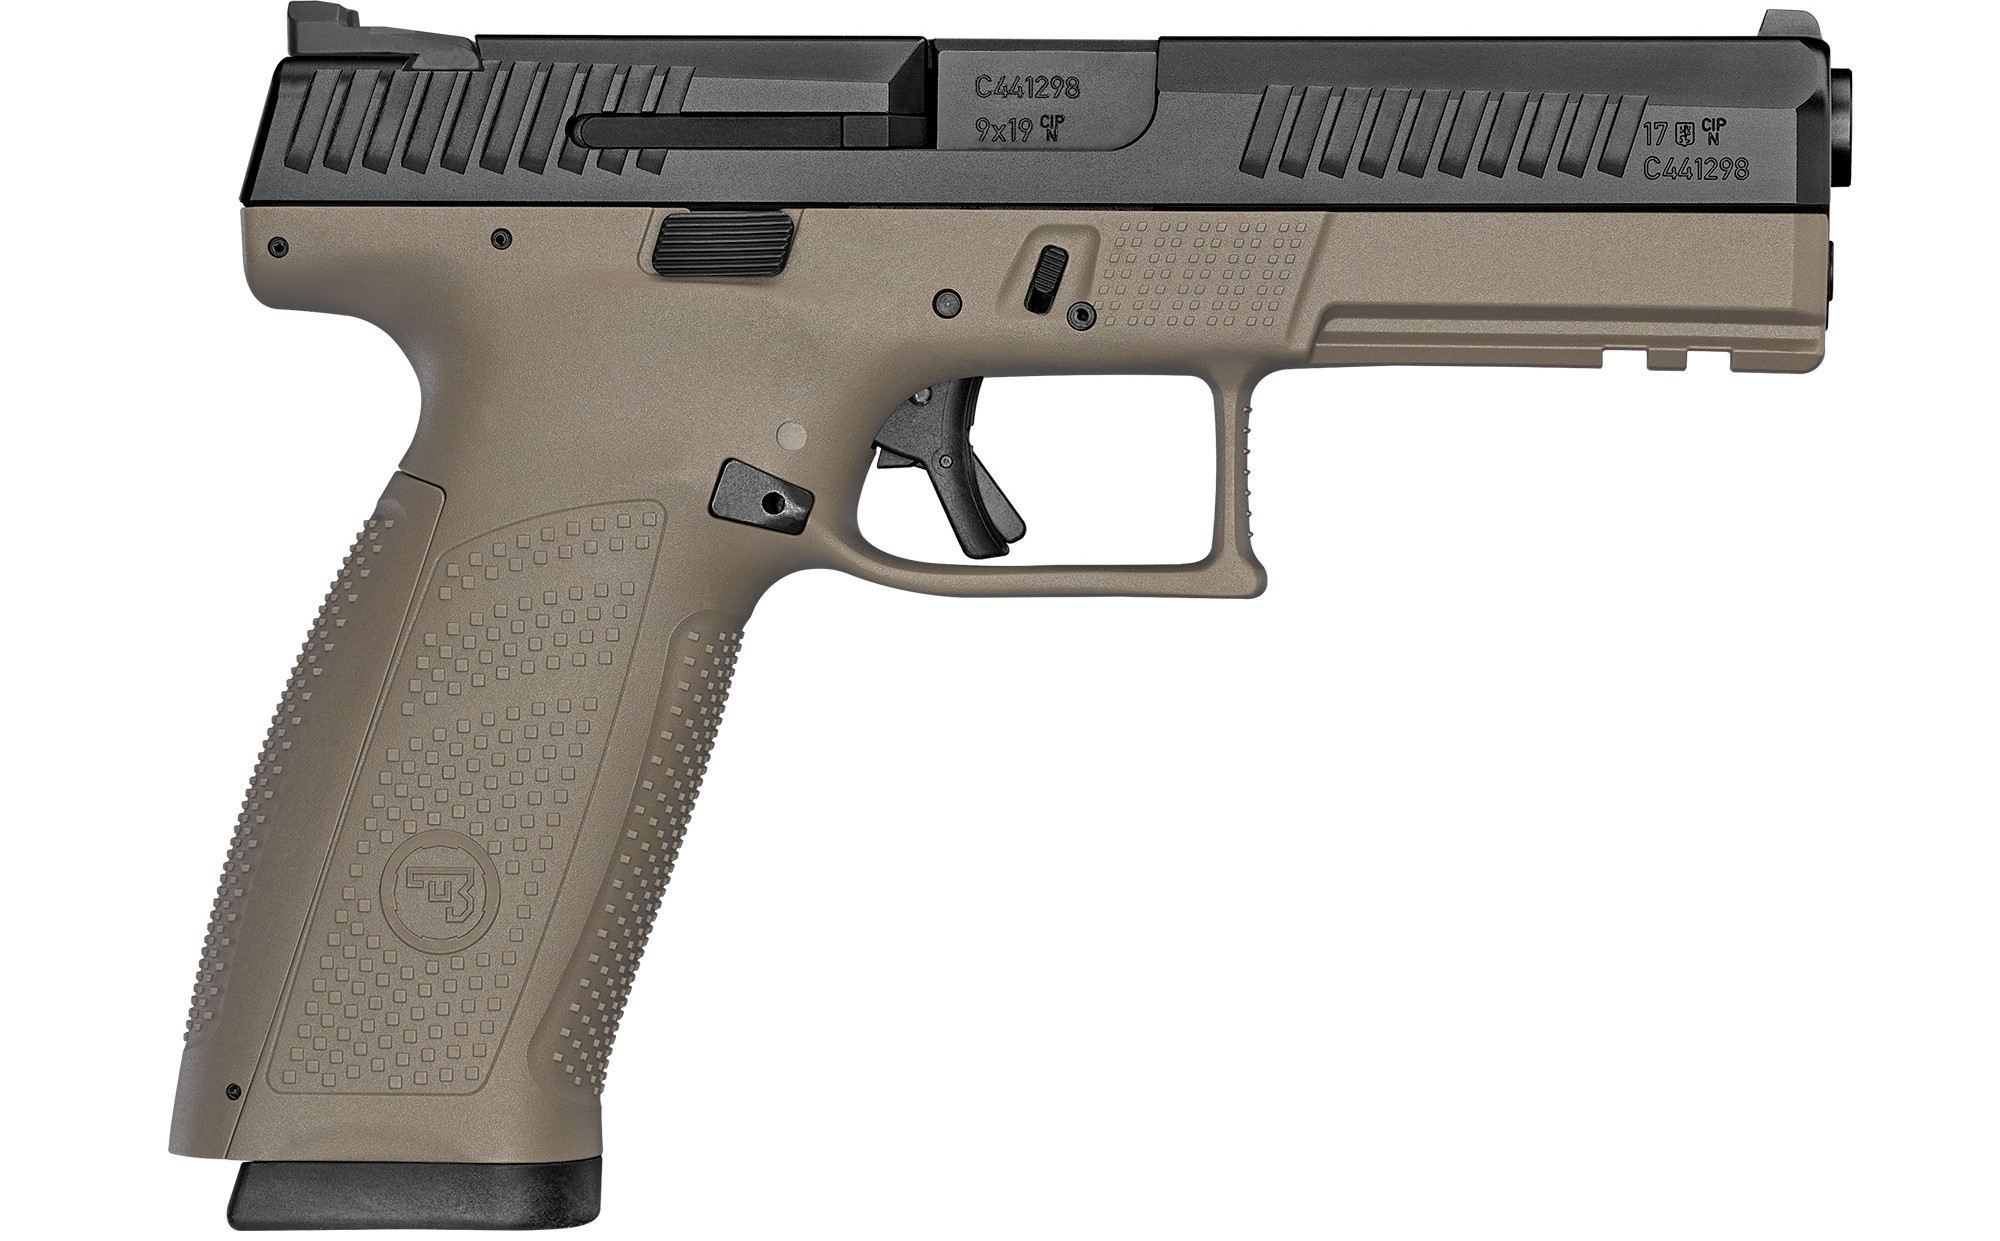 "<BODY><P STYLE=""FONT-FAMILY:ARIAL;""><P ALIGN=""LEFT""> CZ<br> Model:P10F <br> Action: Semi-automatic<br> Caliber: 9MM<br> Barrel Length: 4.5""<br> Frame/Material: Polymer<br> Finish/Color: FDE<br> Sights: Night Sights<br> Capacity: 10Rd<br> <br> Safety: Trigger<br> <H1 STYLE=""COLOR:GREEN"">$579.95</H1></P></BODY></HTML>"